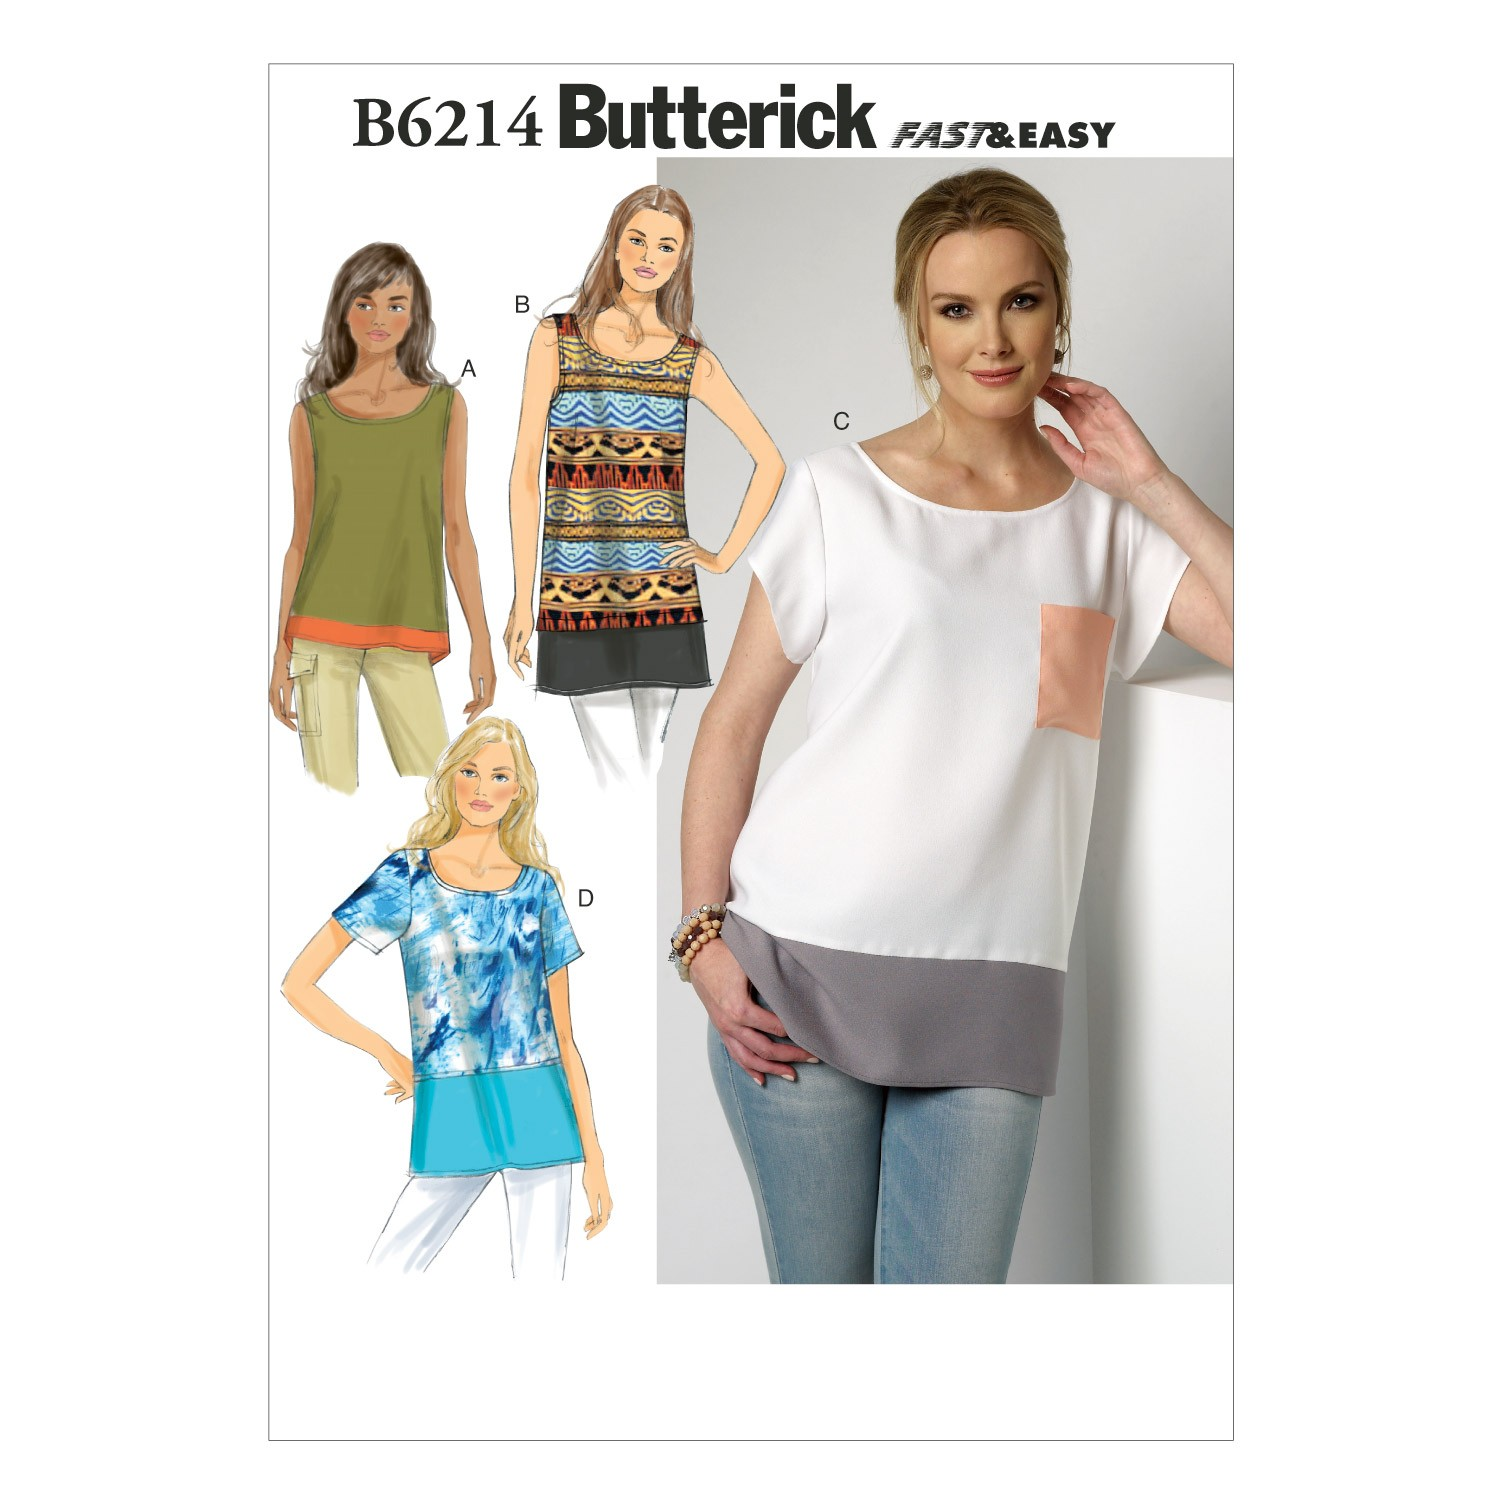 Butterick Sewing Pattern 6214 Misses' Loose Fitting Top & Tunic